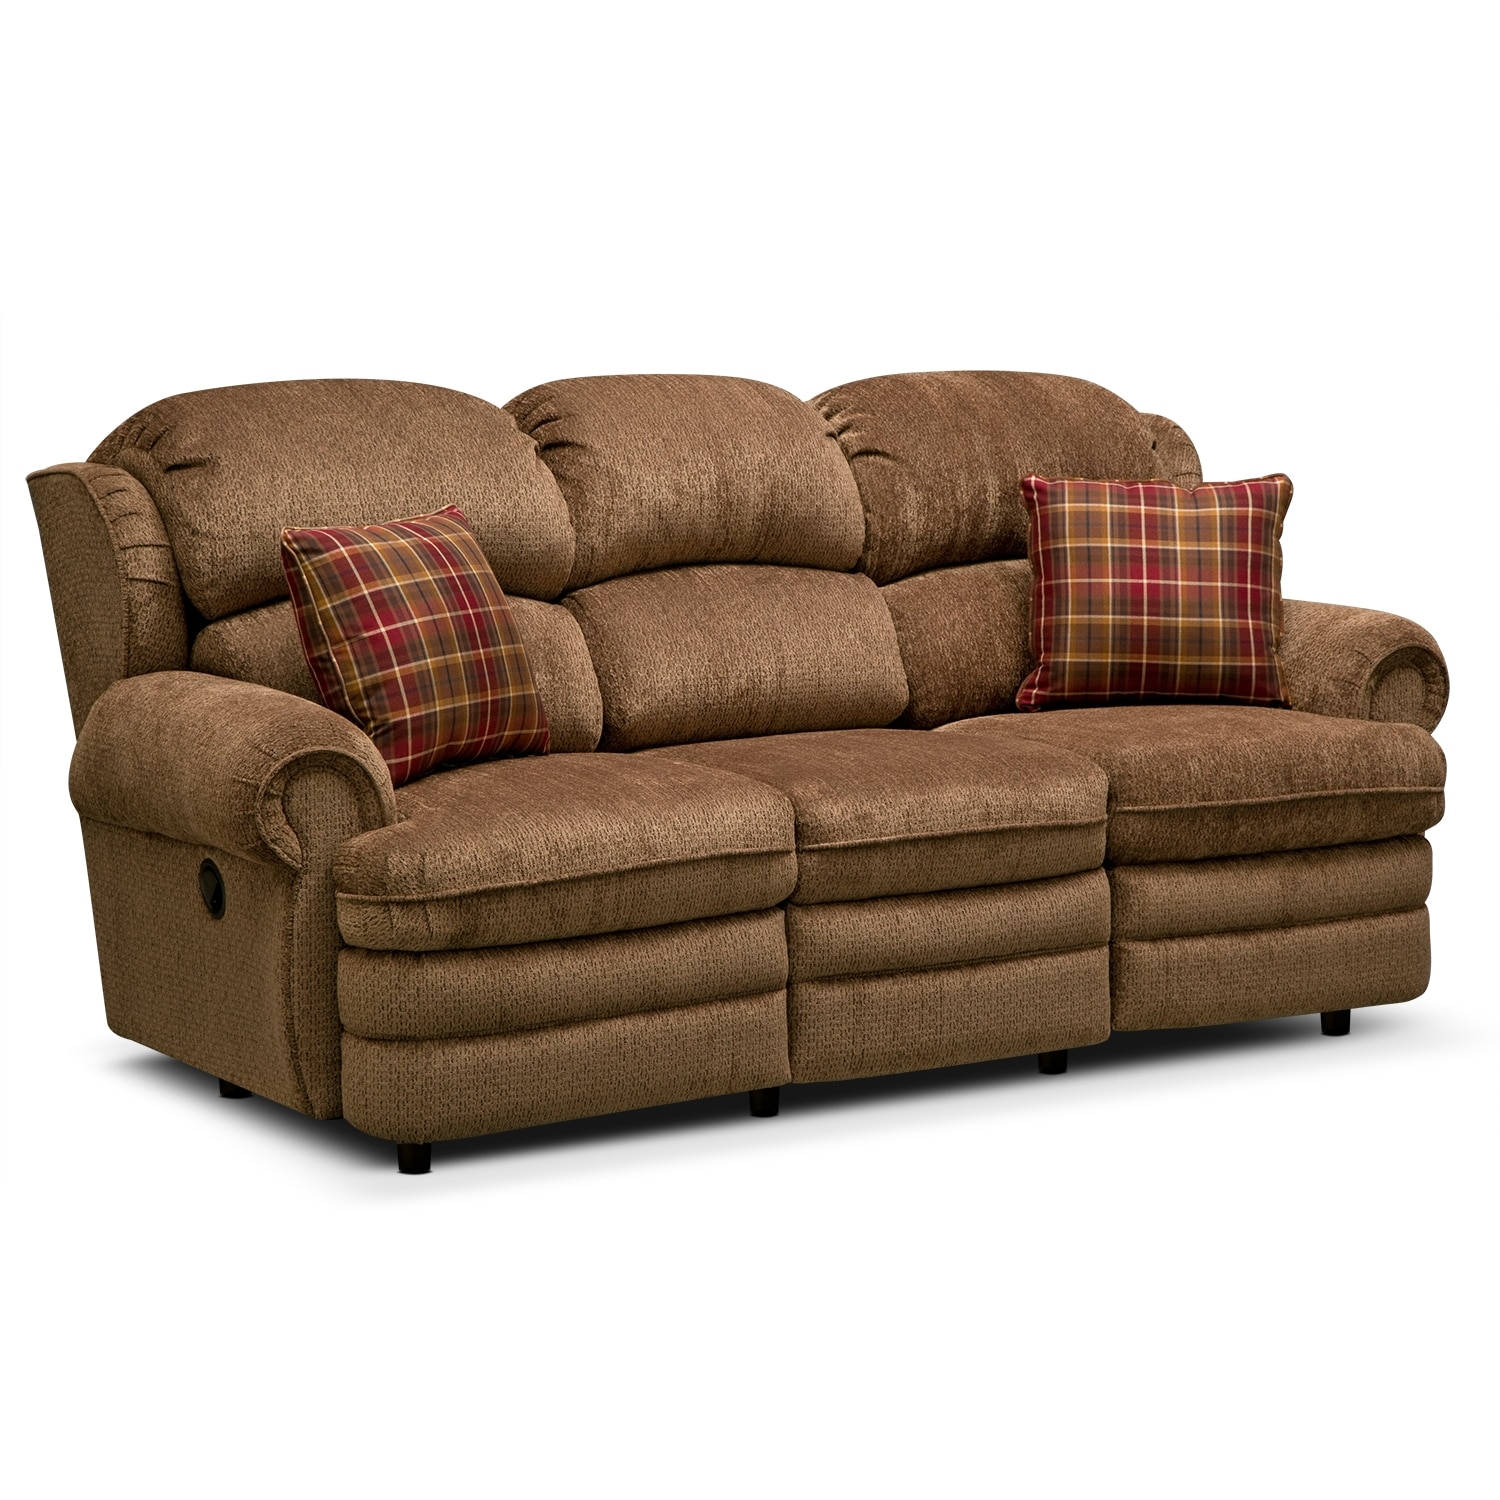 Living Room Furniture - Addison Reclining Sofa